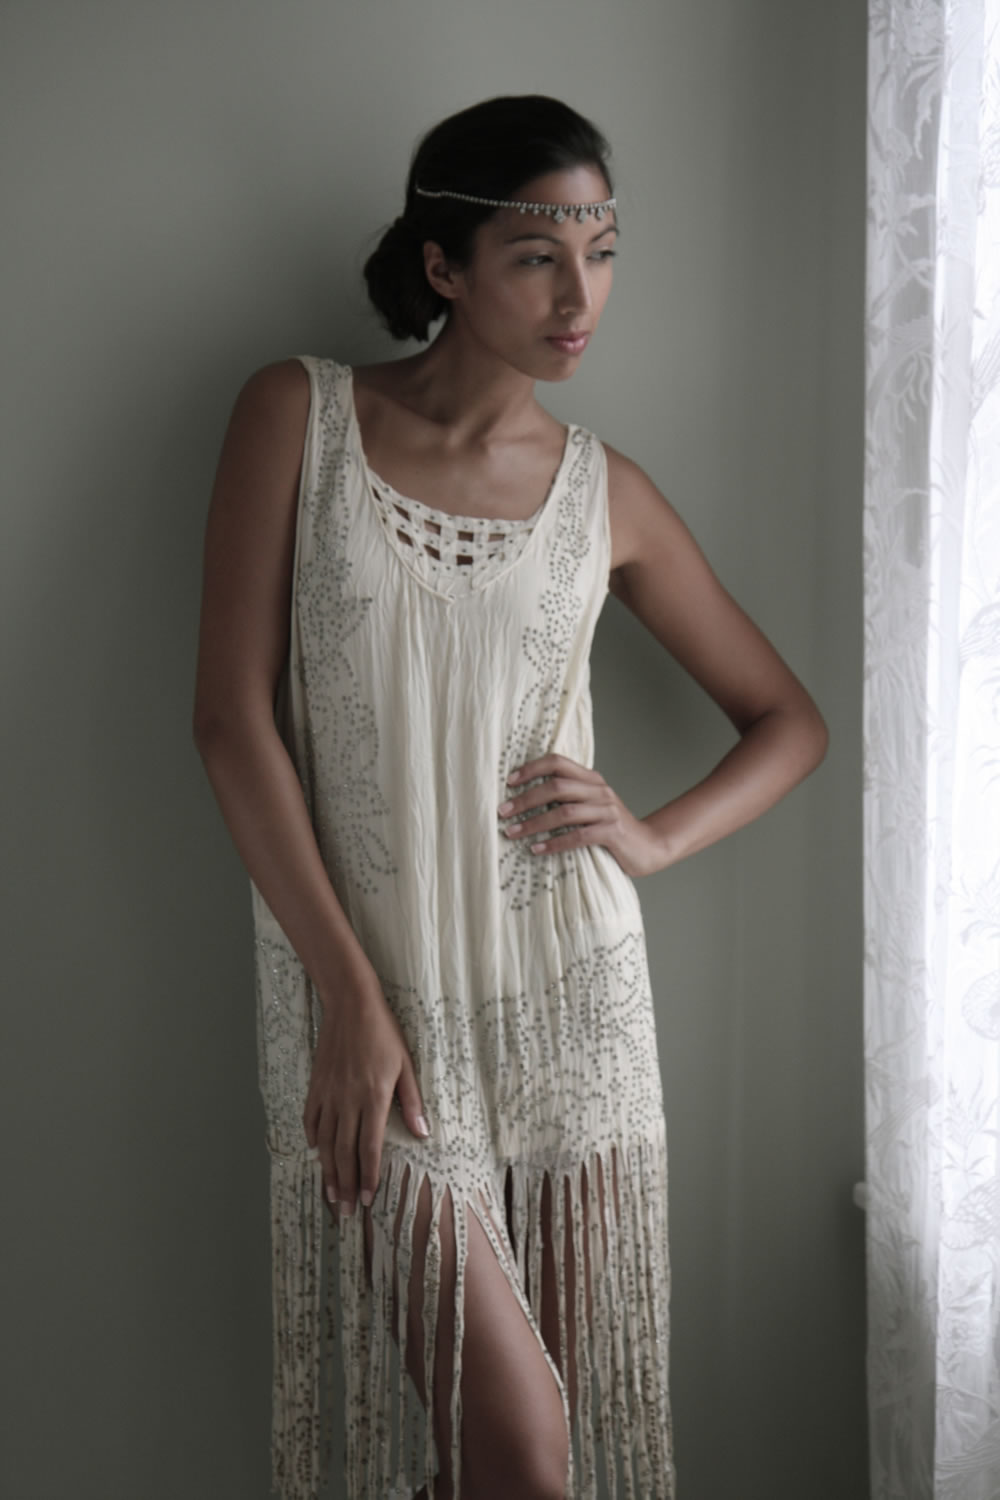 s wedding dresses 20s style wedding dress shop for wedding dress s style on etsy the place to express your creativity through the buying and selling of handmade and vintage goods